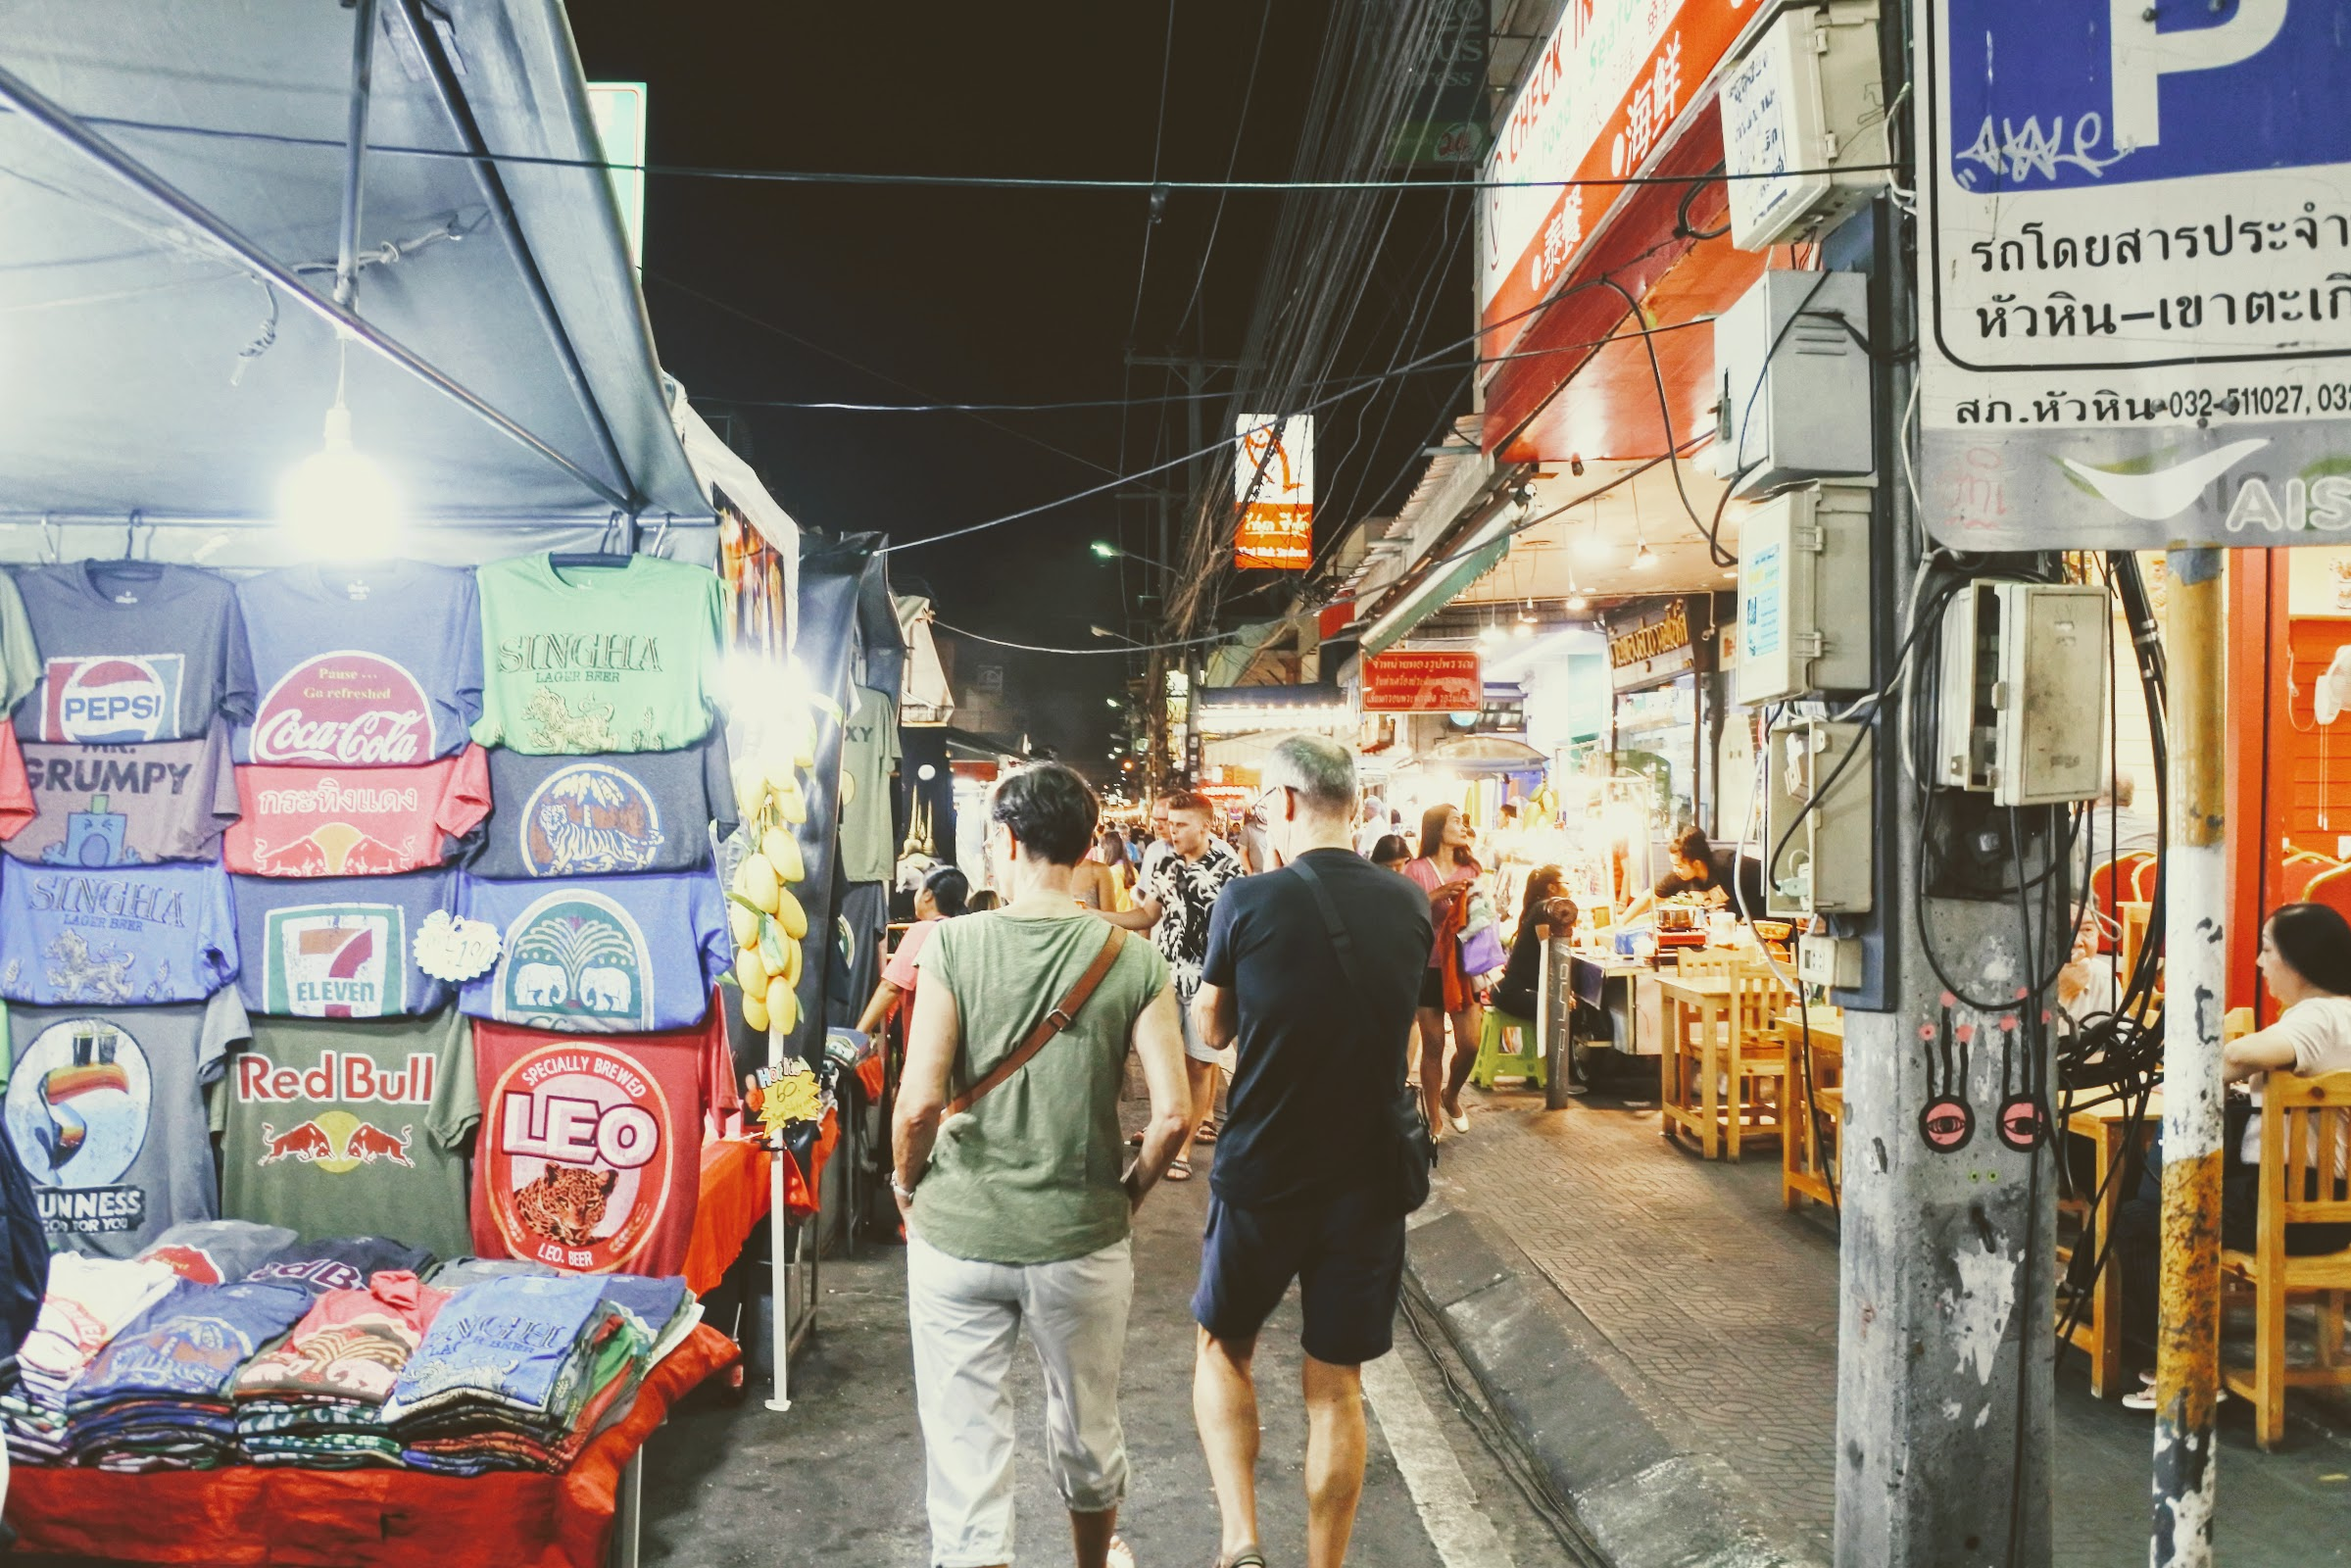 Visit Hua Hin Night Market during your 5 days 4 nights in Hua Hin